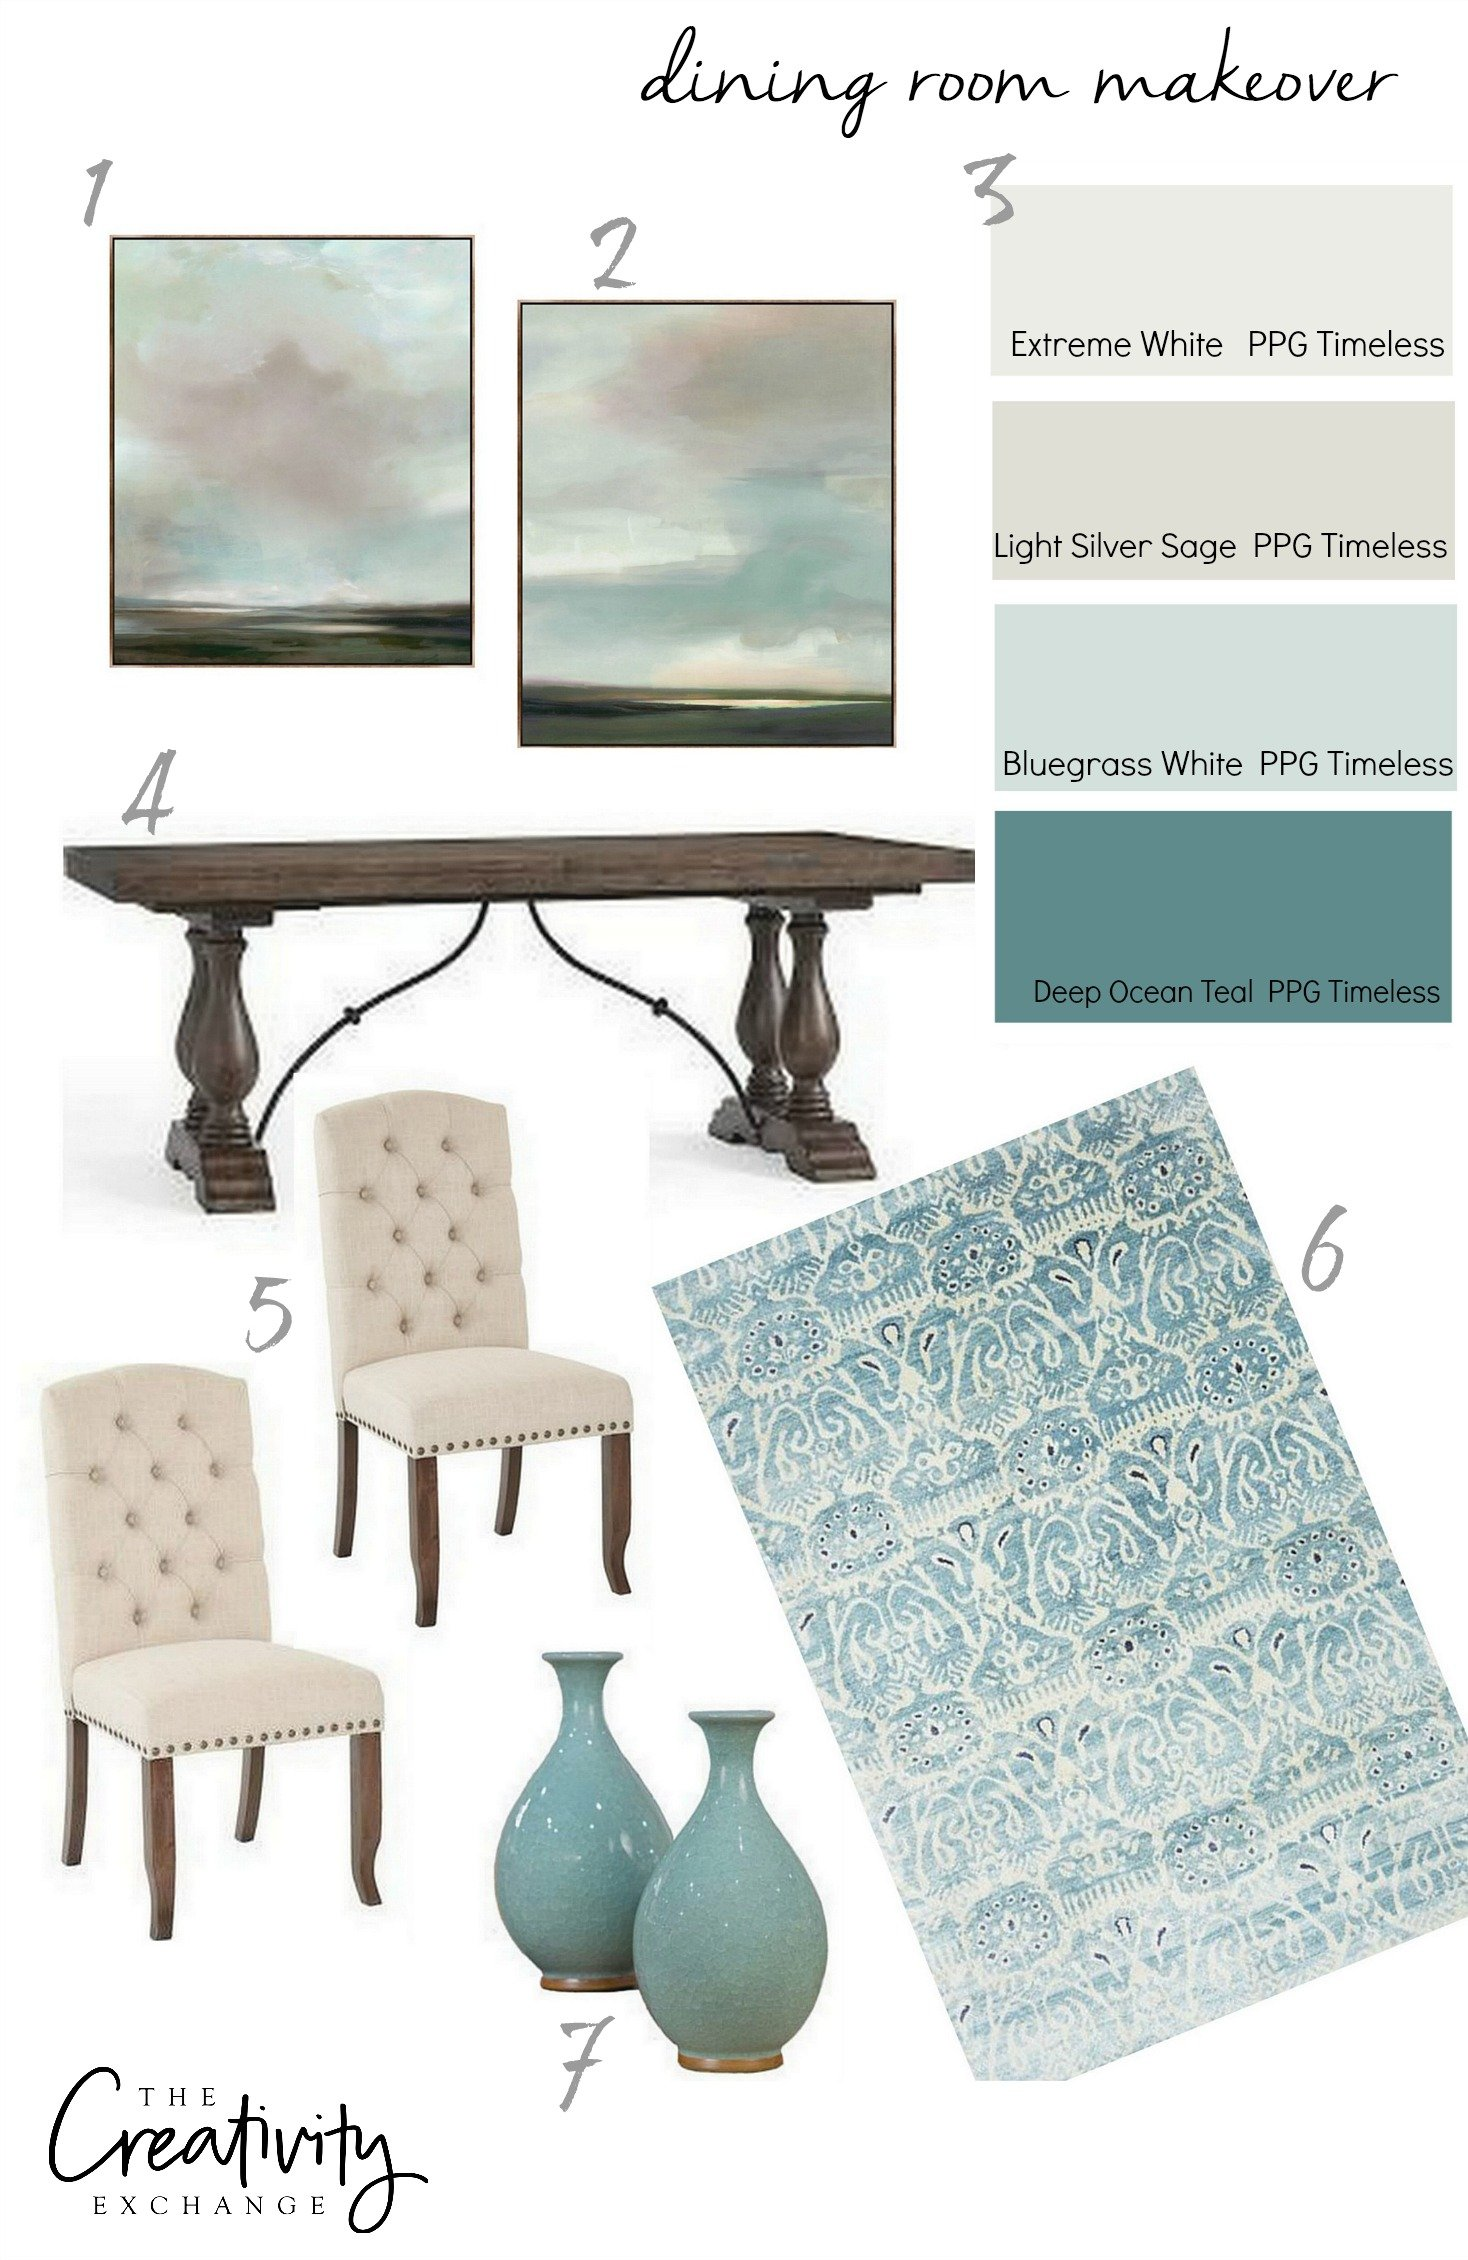 Dining room remodel design board.